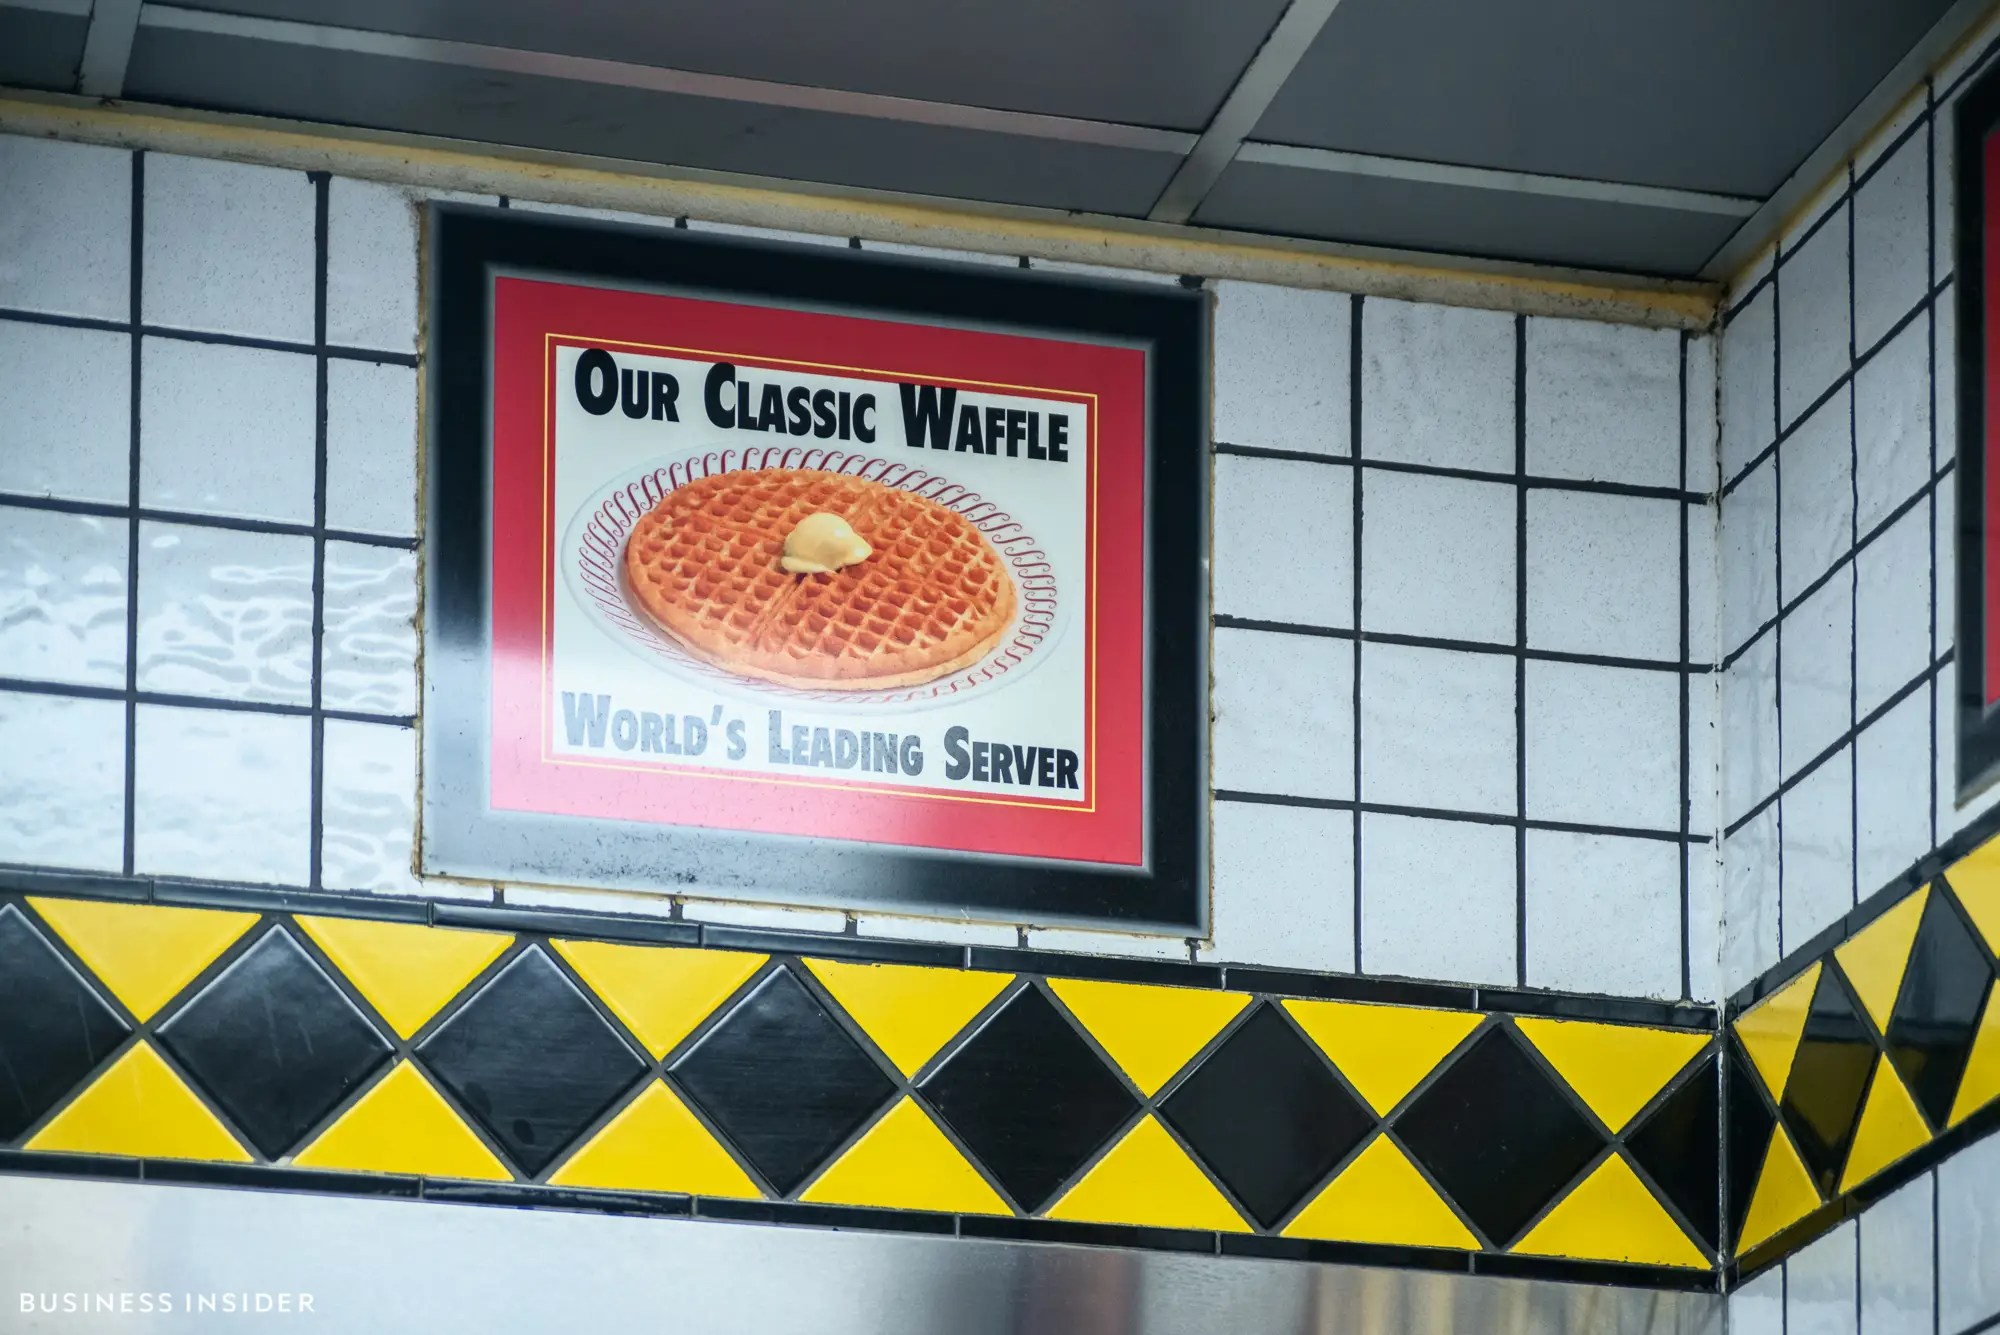 The walls are dotted with greasy-spoon-style diner decor, with signs hawking the chain's titular menu item.